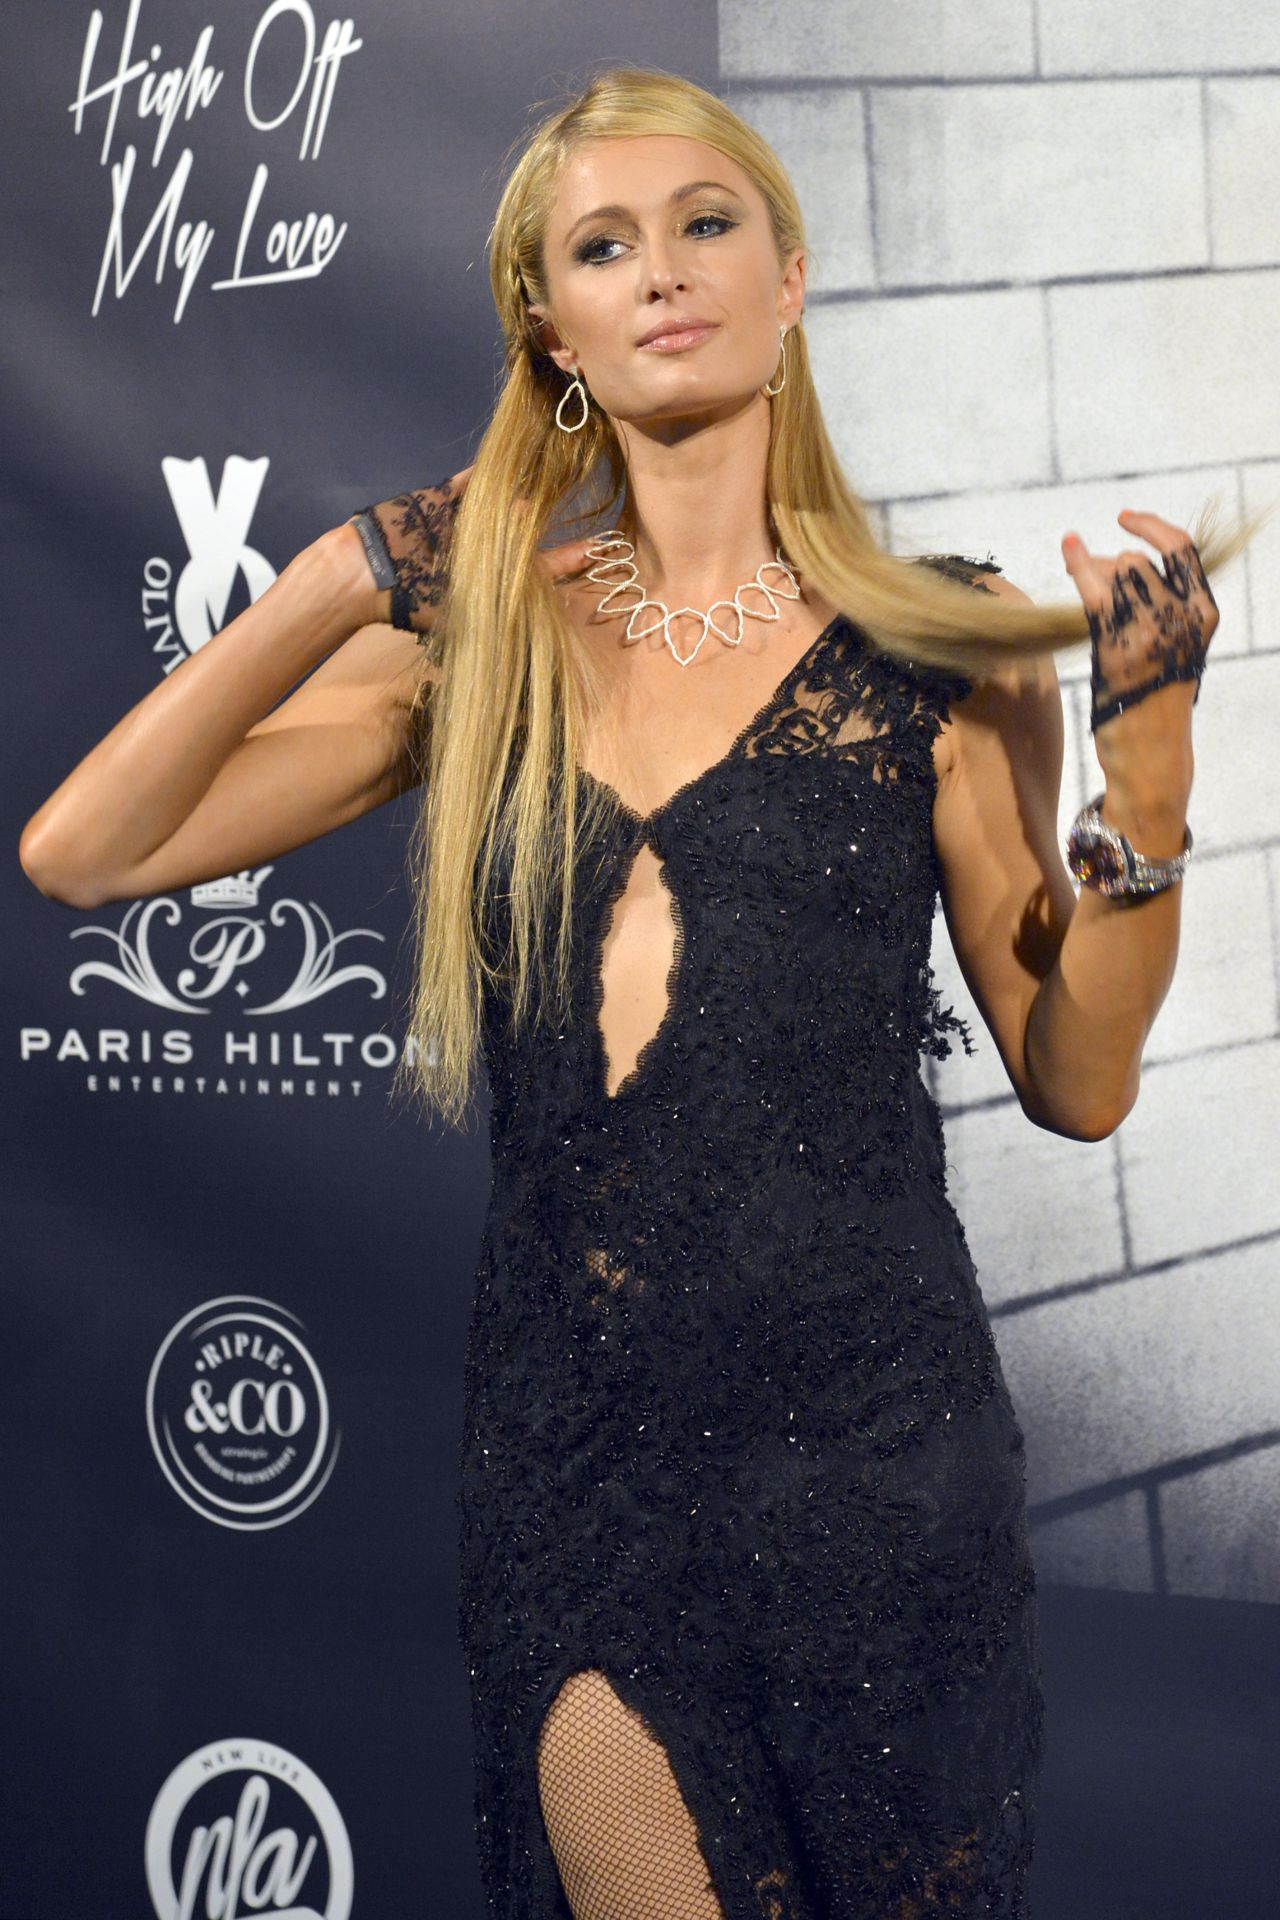 Paris Hilton At Olivia Valere Disco In Marbella August 2015